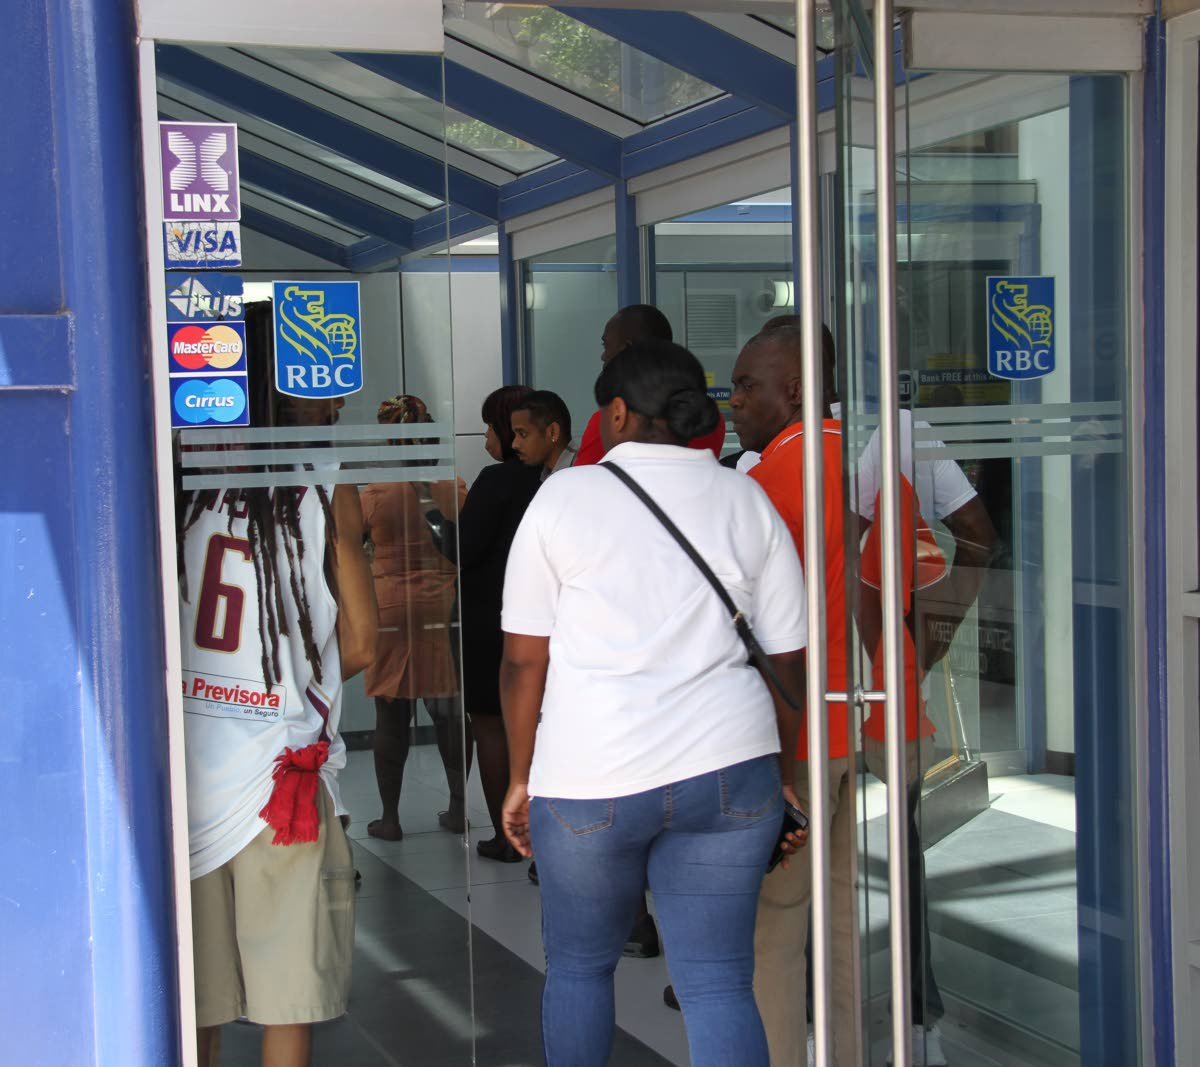 FILE PHOTO: This May 28, 2018 file photo shows a long line of people waiting to use the ATM at RBC Royal Bank's (RBC) Park Street, Port of Spain branch on a day when few of RBC ATMs which were working that day. PHOTO BY SUREASH CHOLAI